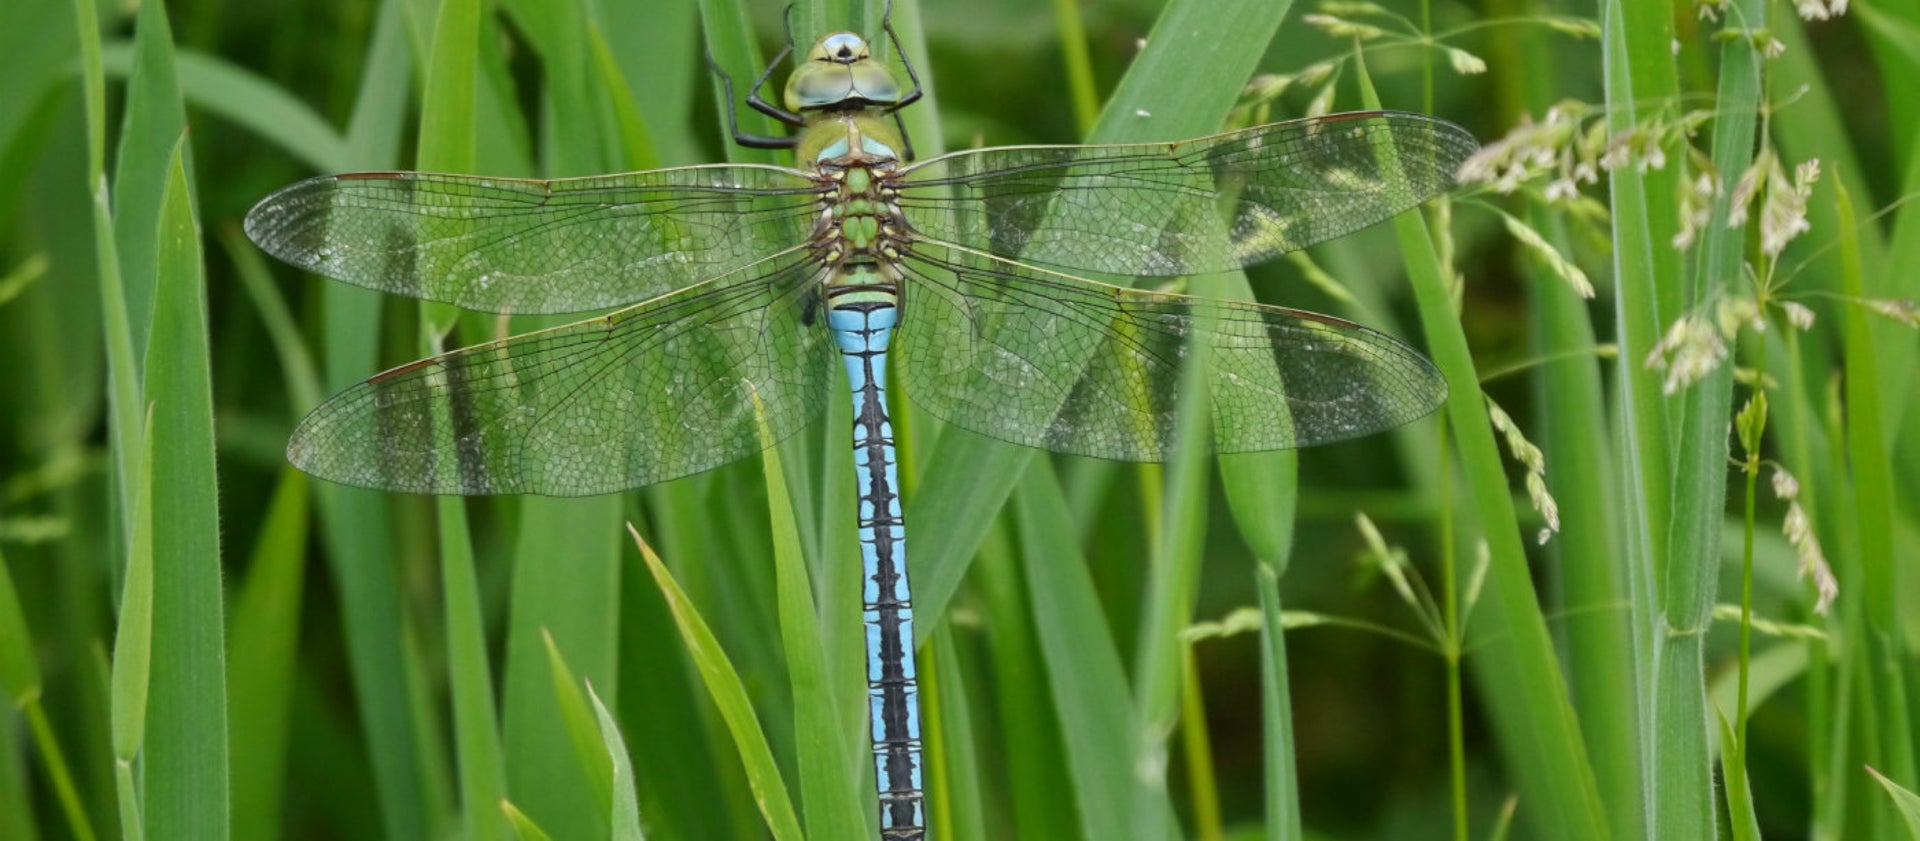 Emperor dragonflies shed underwater skins ready for life above the pond | National TrustVisit our